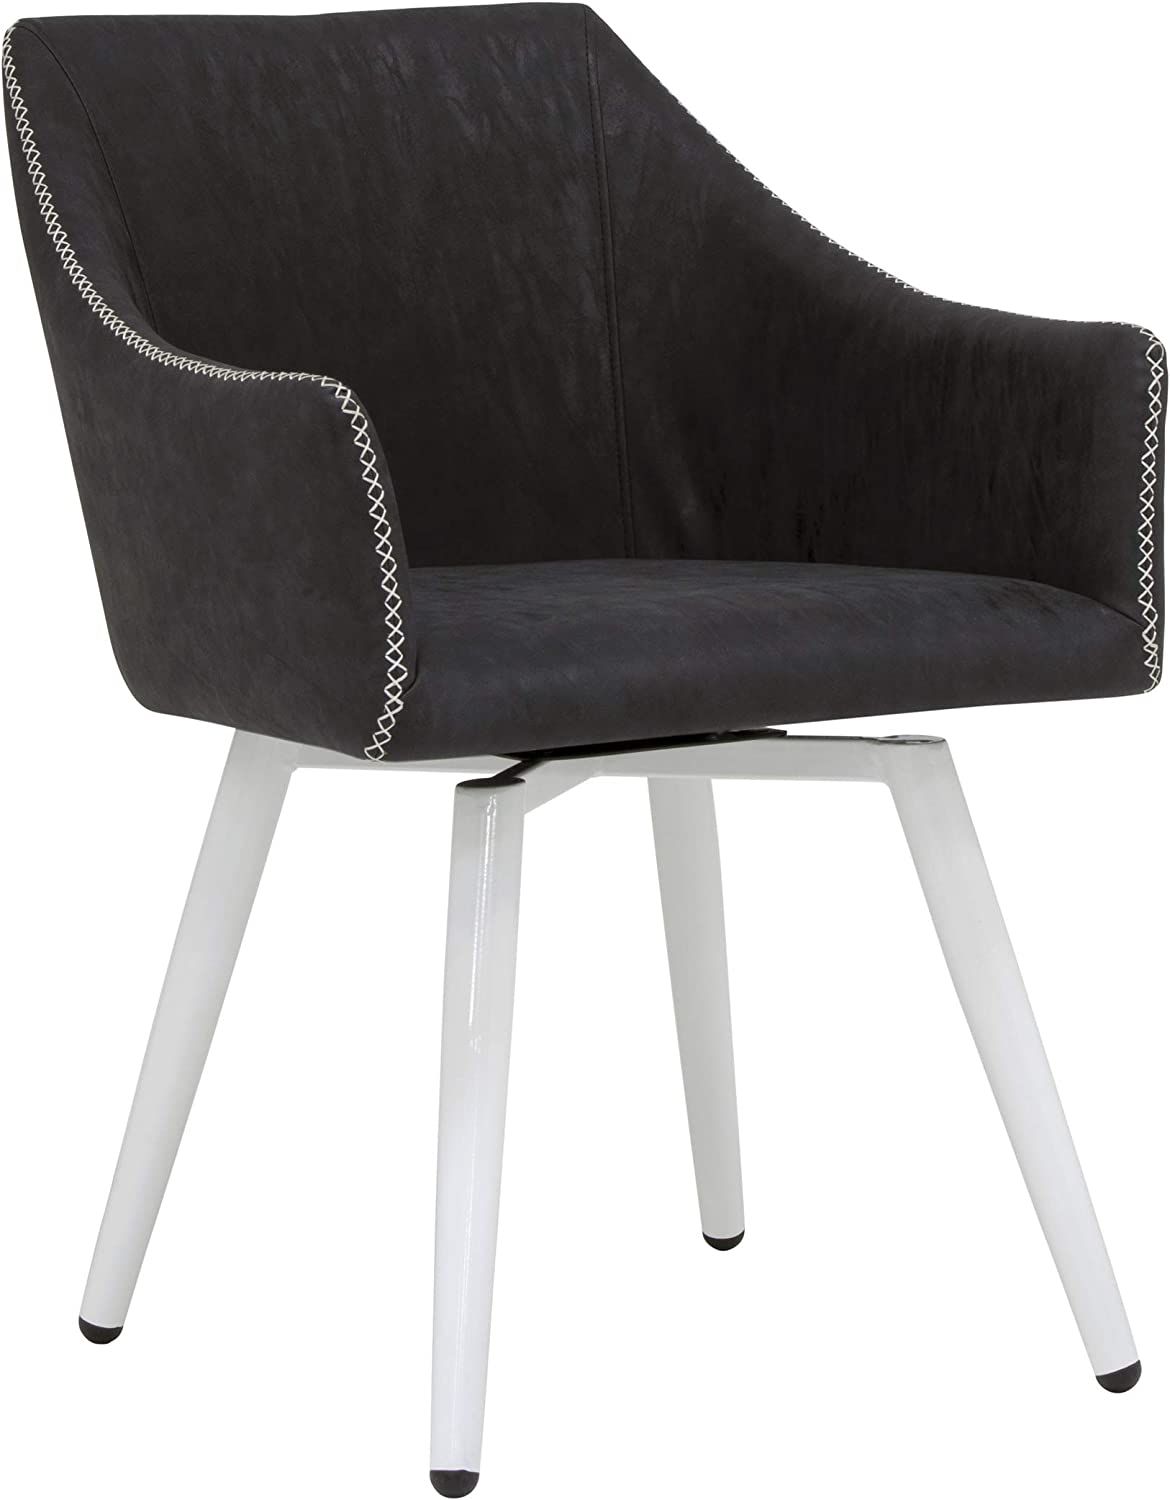 Calico Designs Sydney Swivel, Mid Back Home Office Accent Chair with Arms, No Casters, in White Metal Legs/Crinkled Patterned Dark Gray Faux Leather with Stitching Detail, Grey